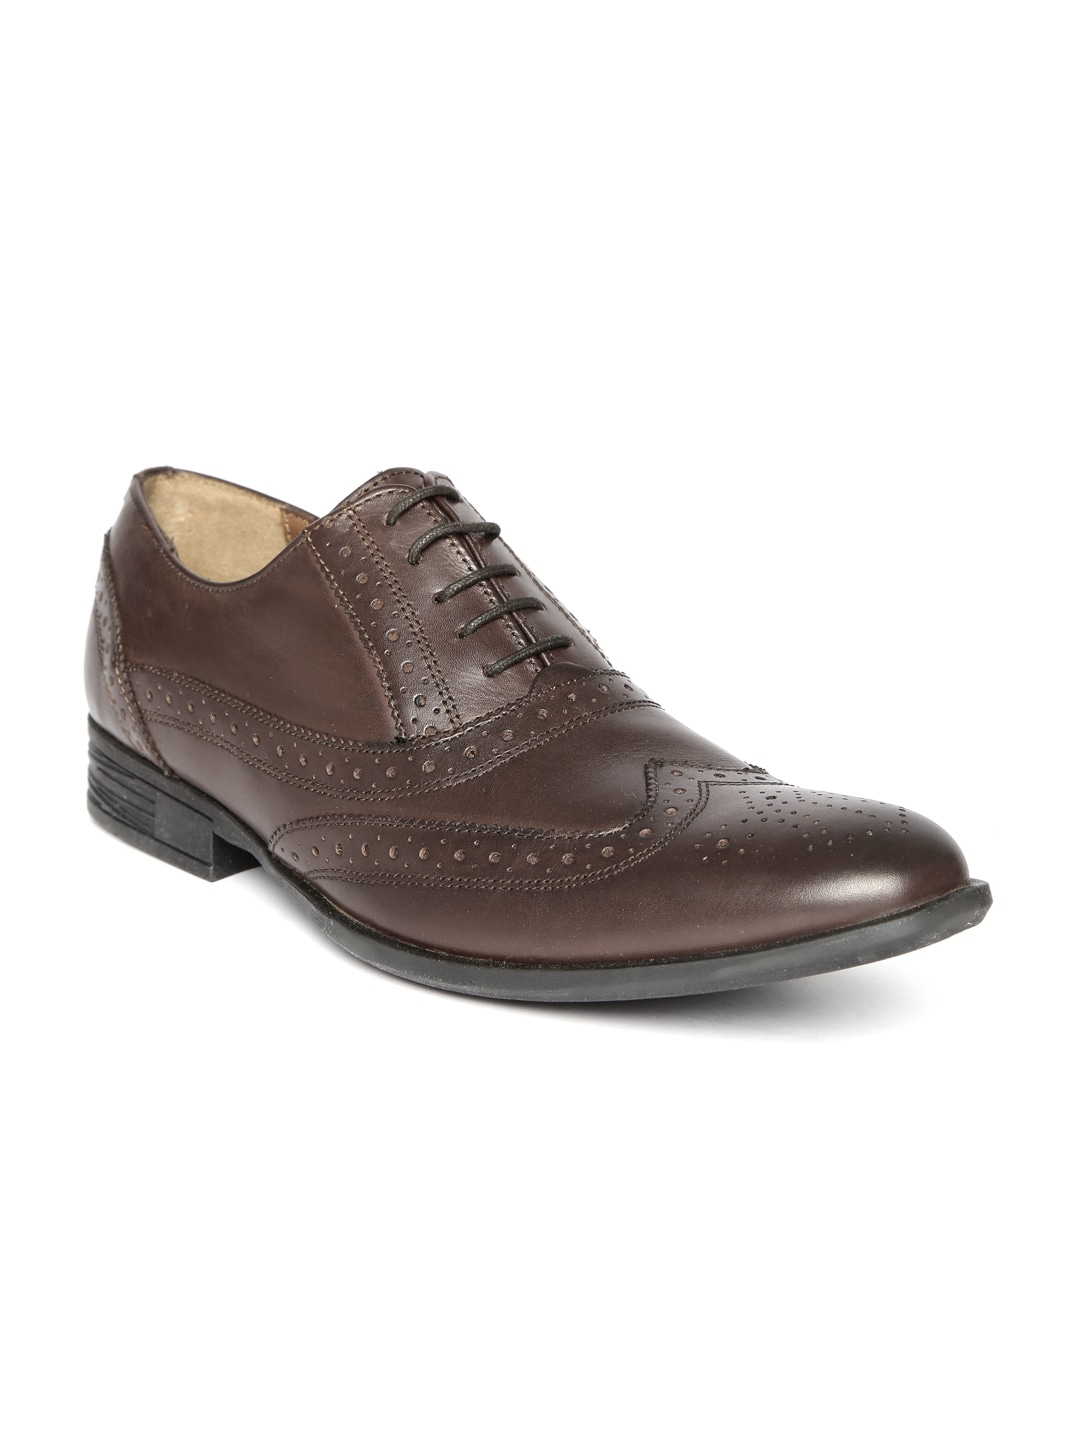 bb9d90a0795 Hush Puppies - Buy Hush Puppies shoes Online in India